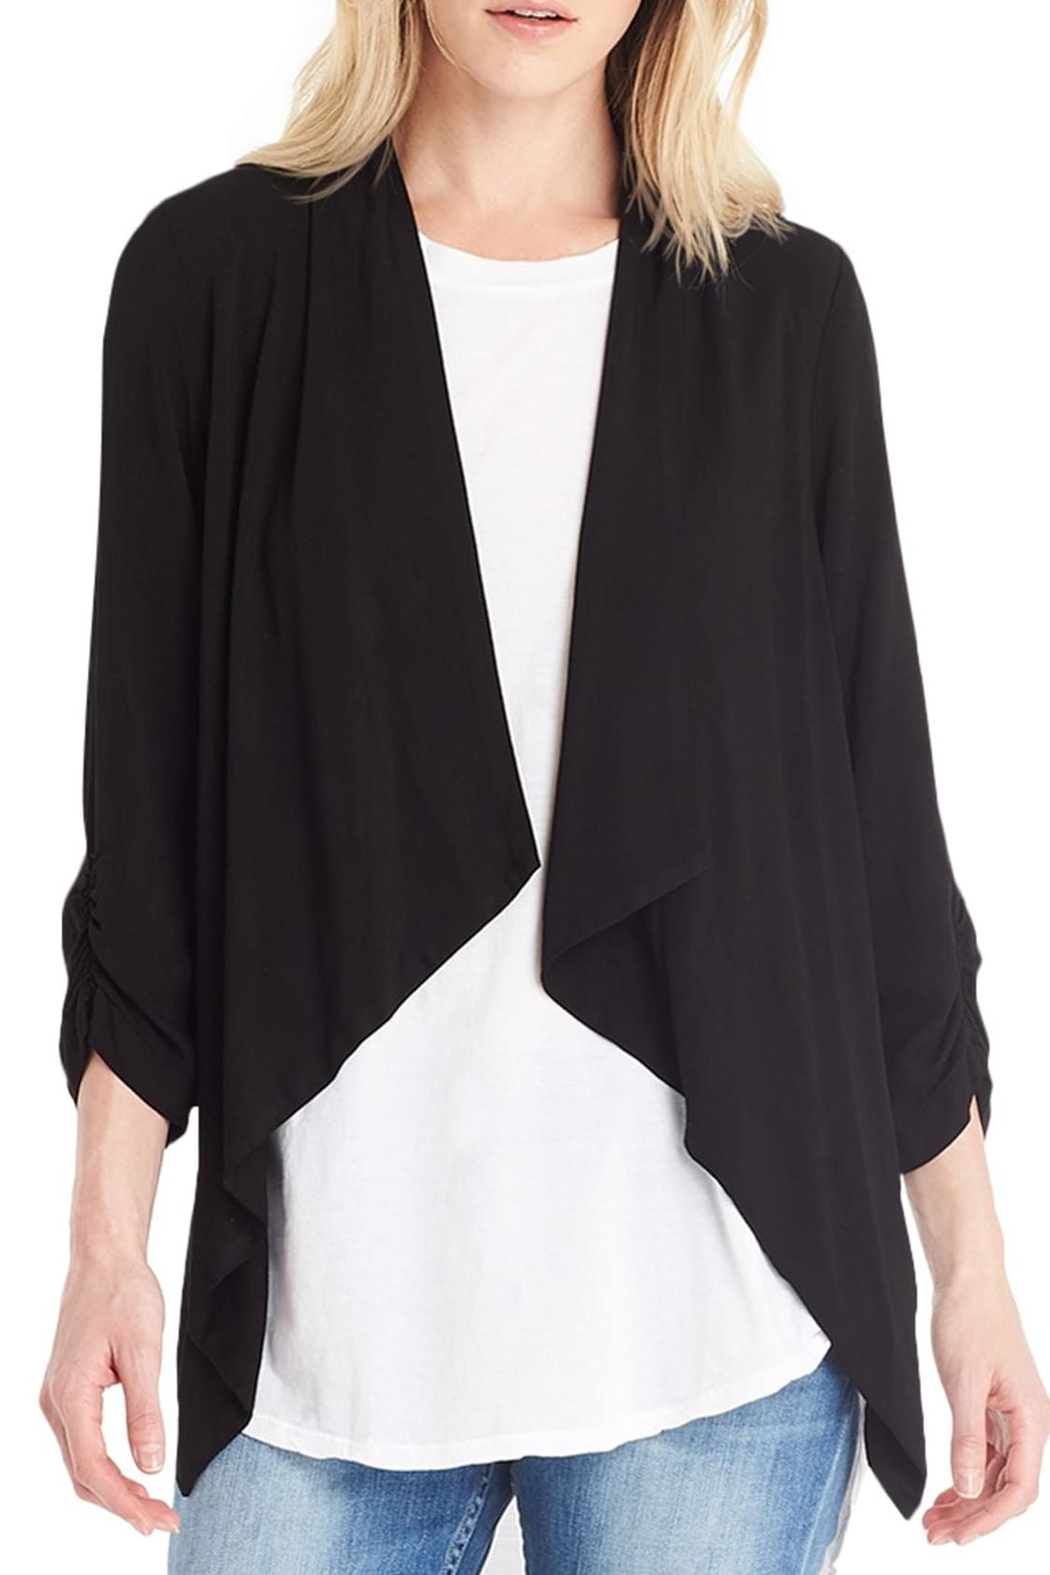 drape soft web image clara front cardigan from l sunwoo s drapes by blue products charlotte new jersey cropped